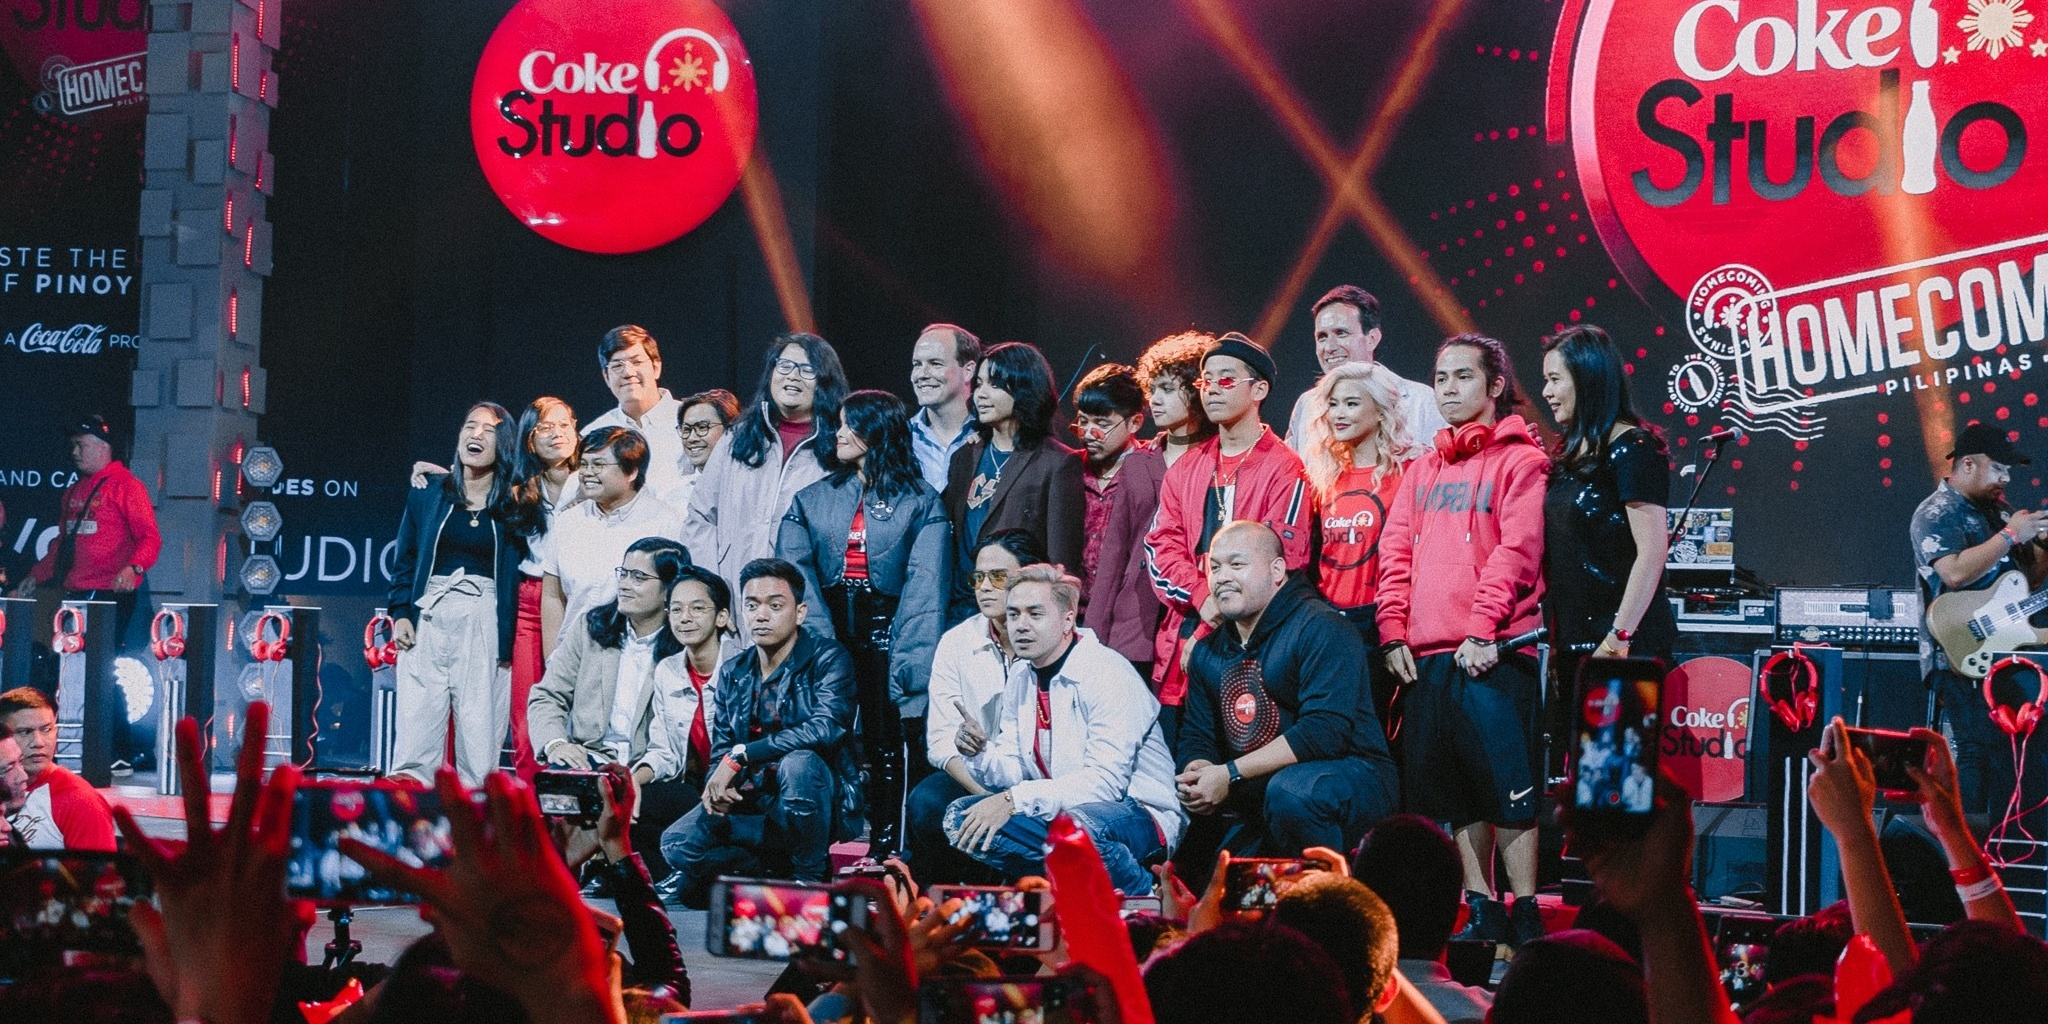 Coke Studio Homecoming lineup revealed: IV of Spades, QUEST, Ben&Ben, Juan Miguel Severo, and more